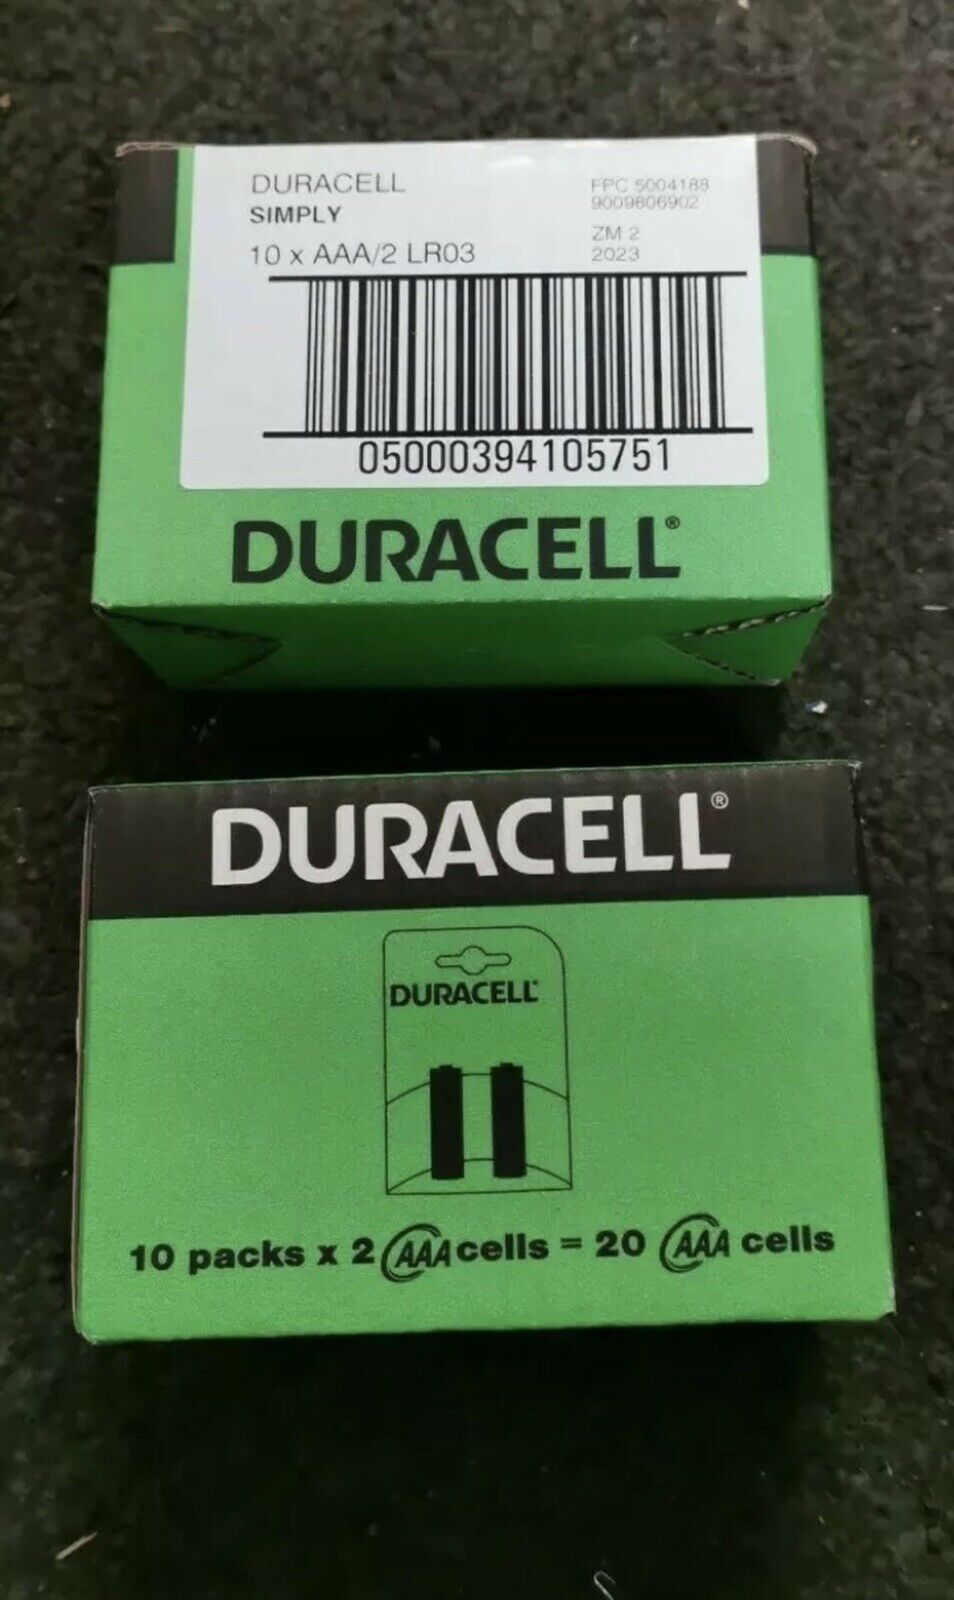 40x DURACELL SIMPLY AAA (40 BATTERIES) Fast Dispatch